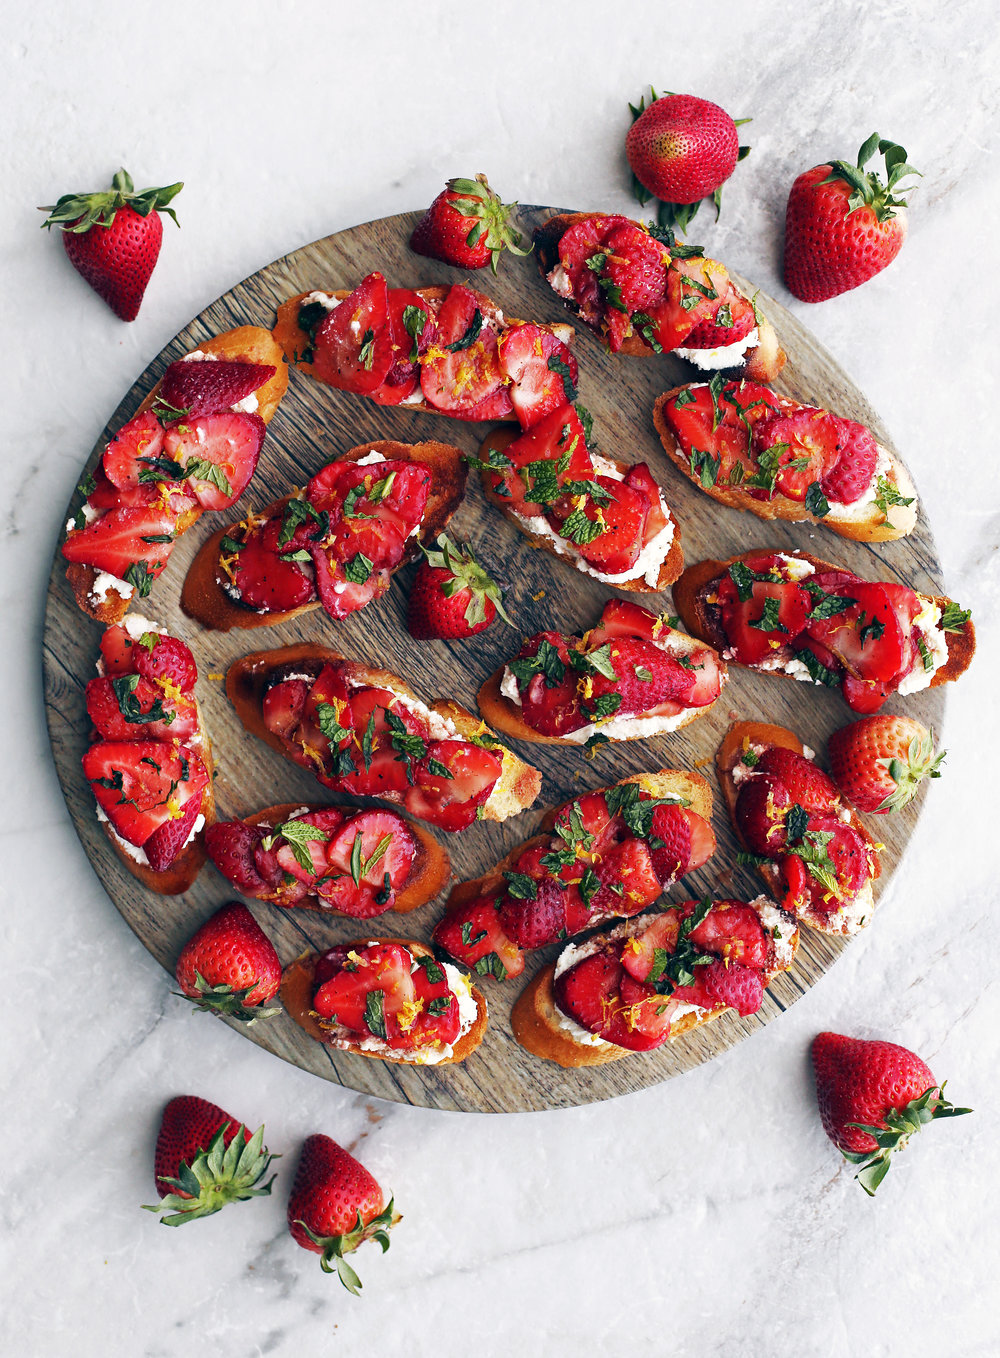 Overhead view of Balsamic Strawberry Ricotta Crostini garnished with mint and lemon zest on a large round platter.